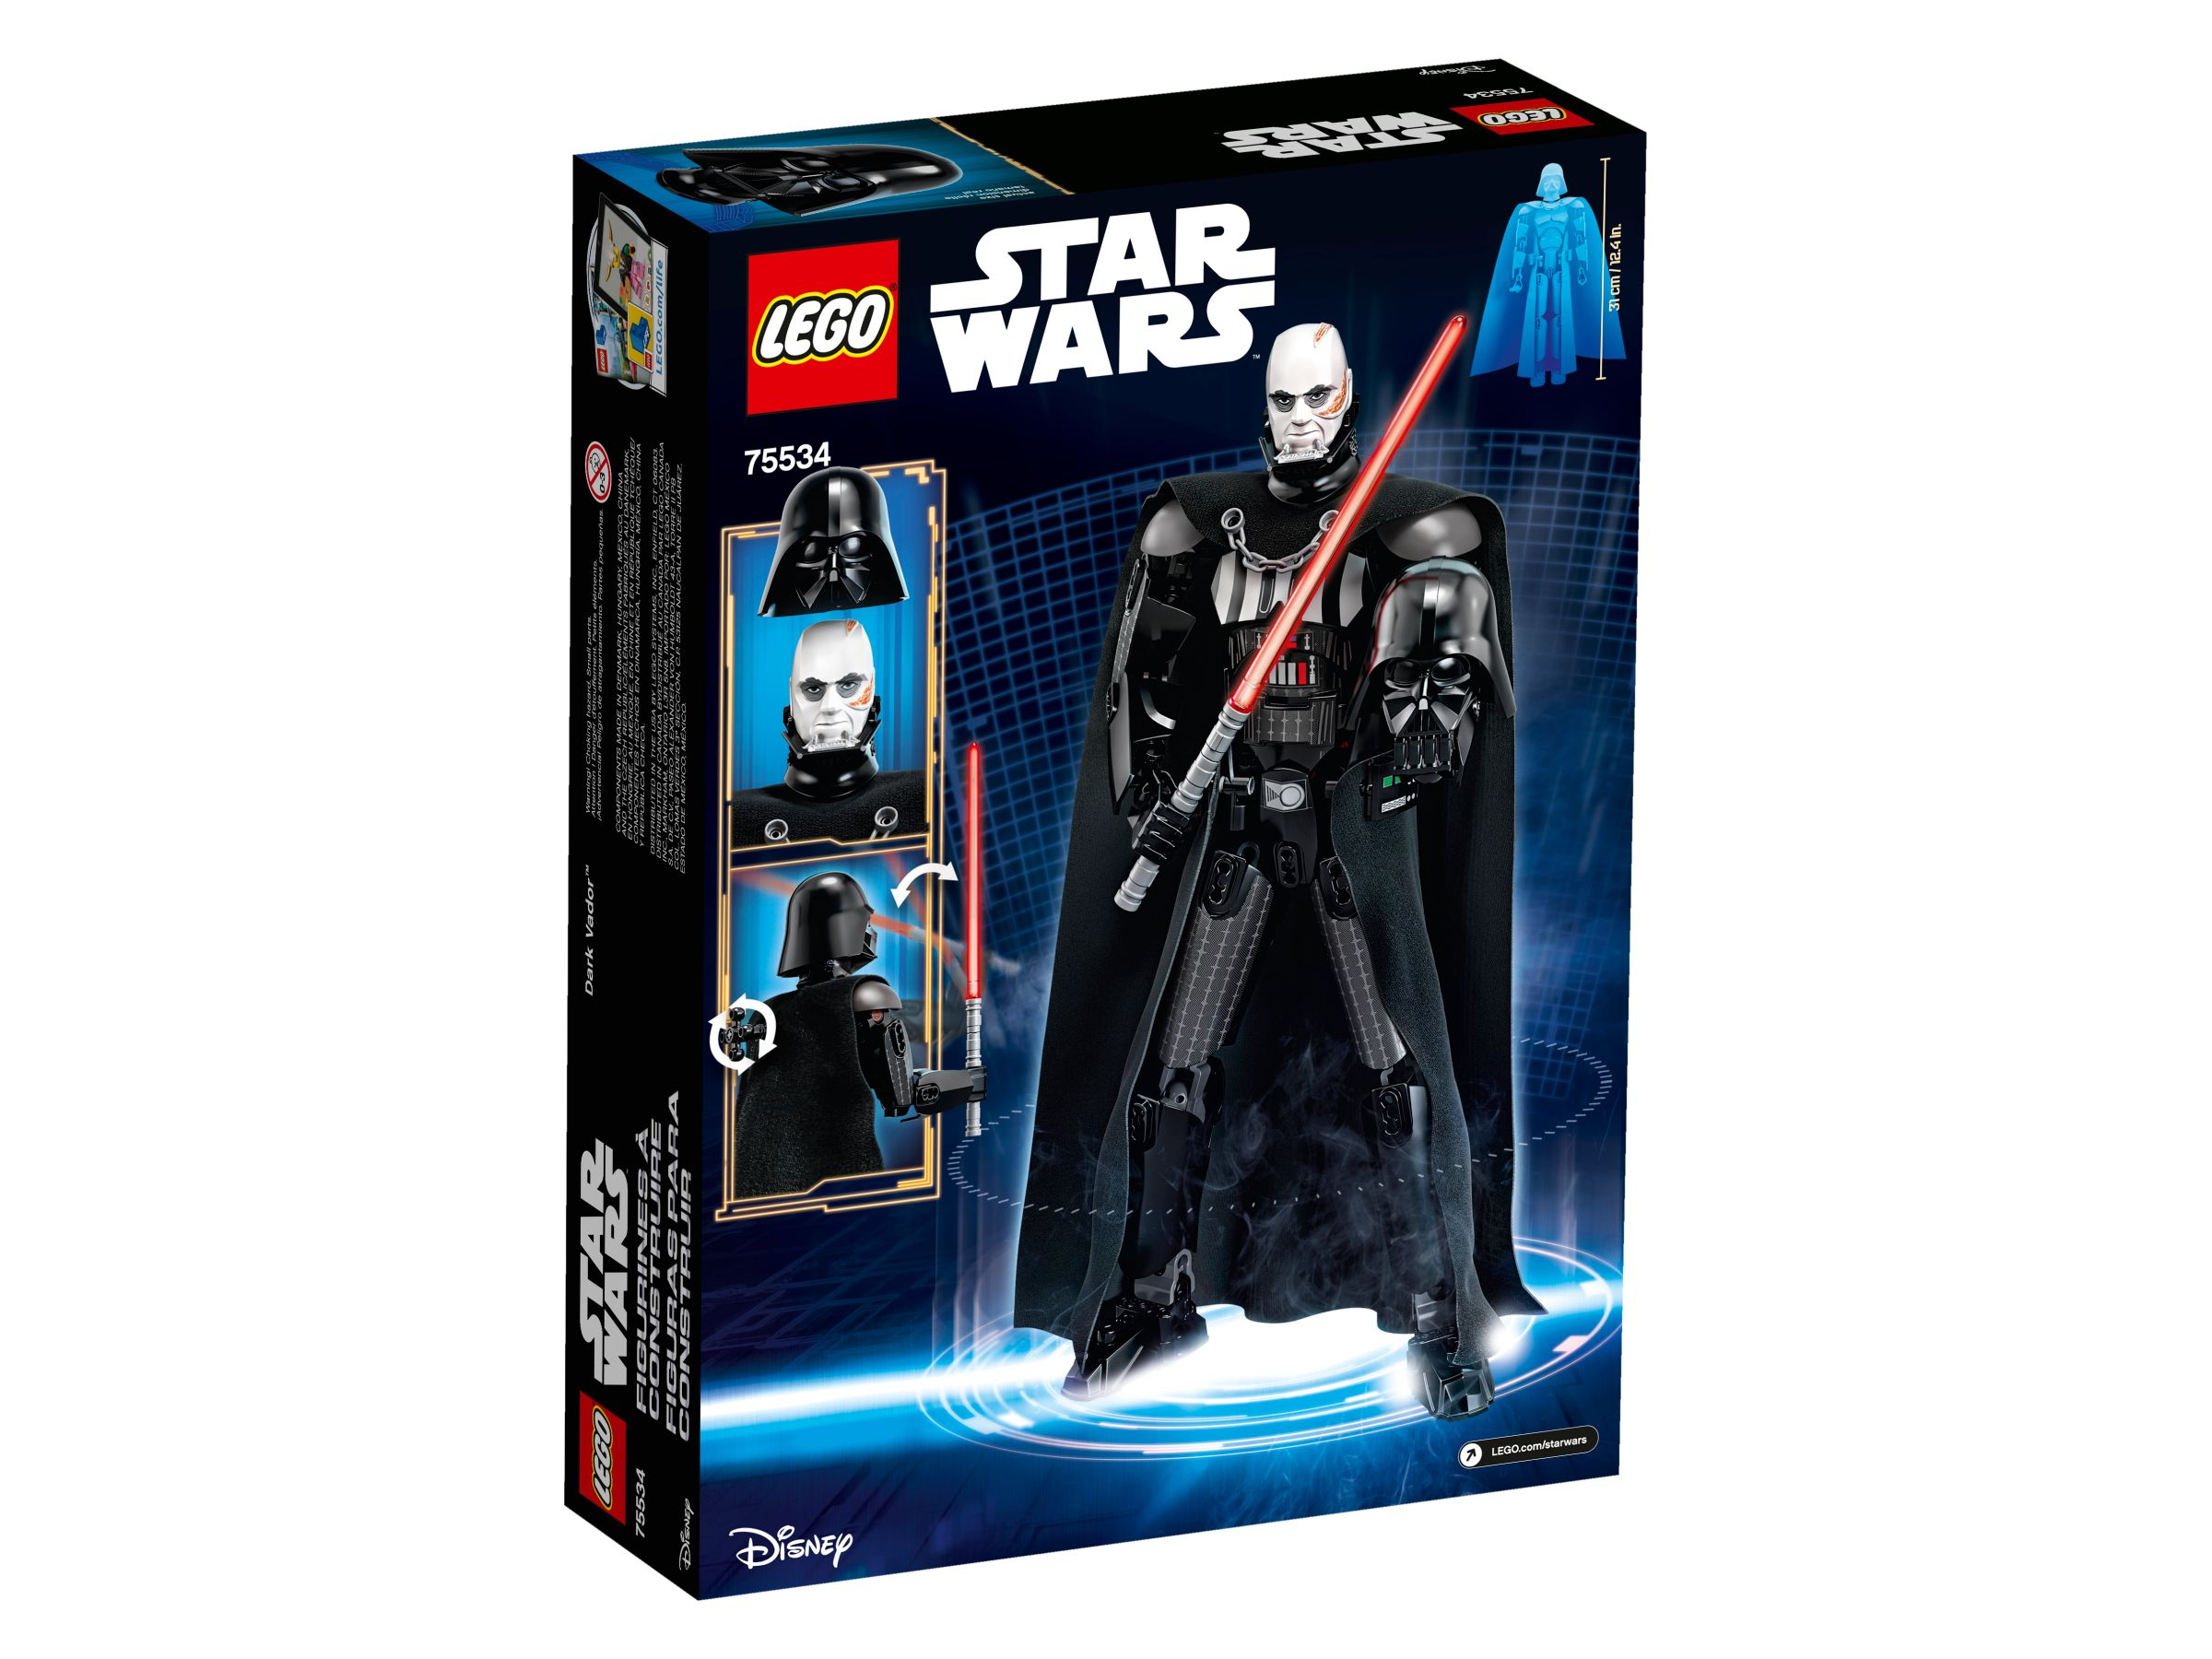 LEGO Star Wars Buildable Figures 75534 Darth Vader LEGO_75534_alt2.jpg